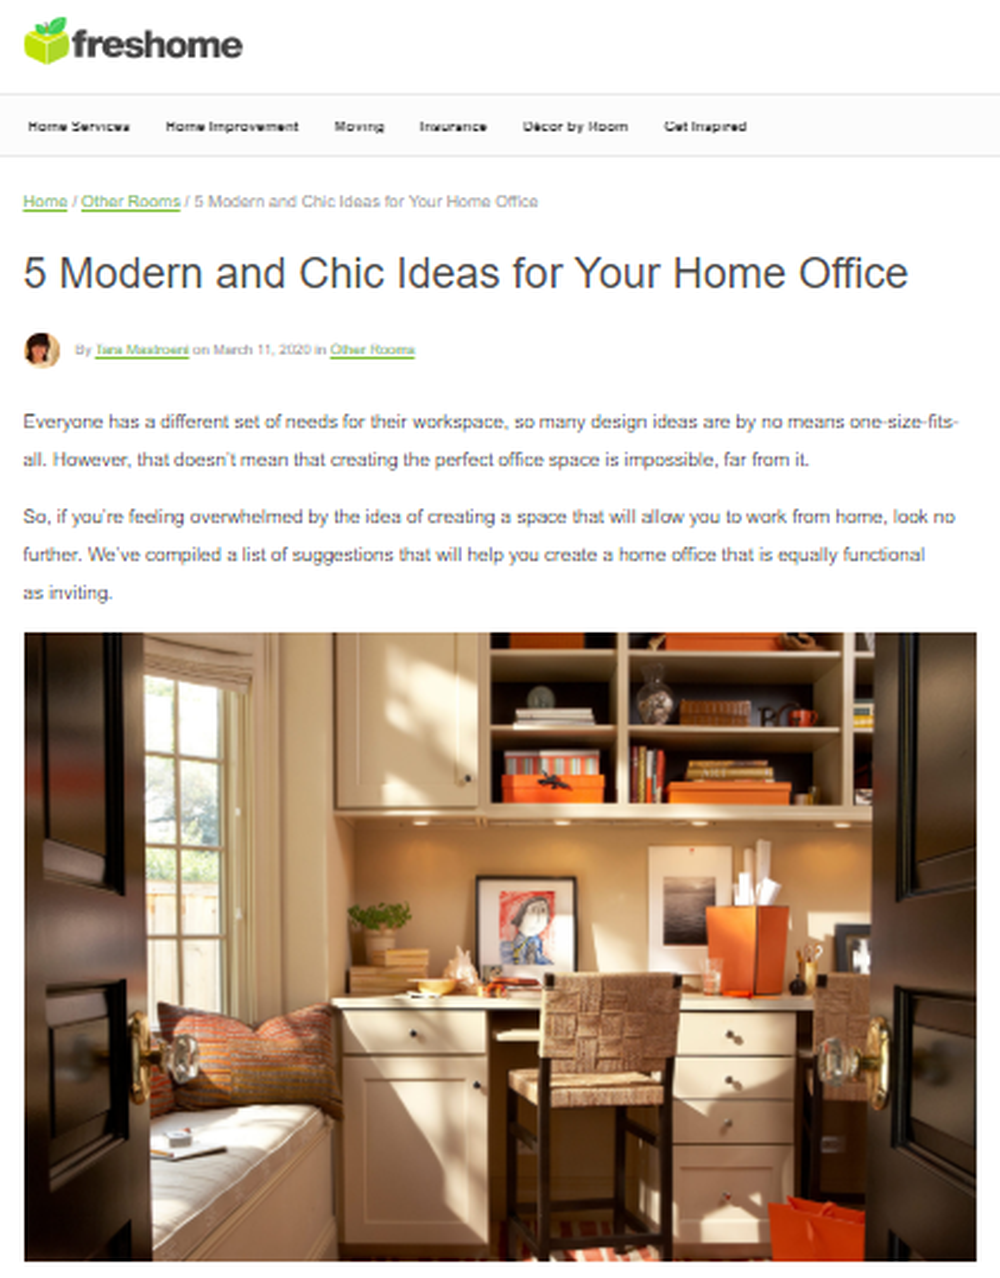 4_Modern_and_Chic_Ideas_for_Your_Home_Office_Freshome.png